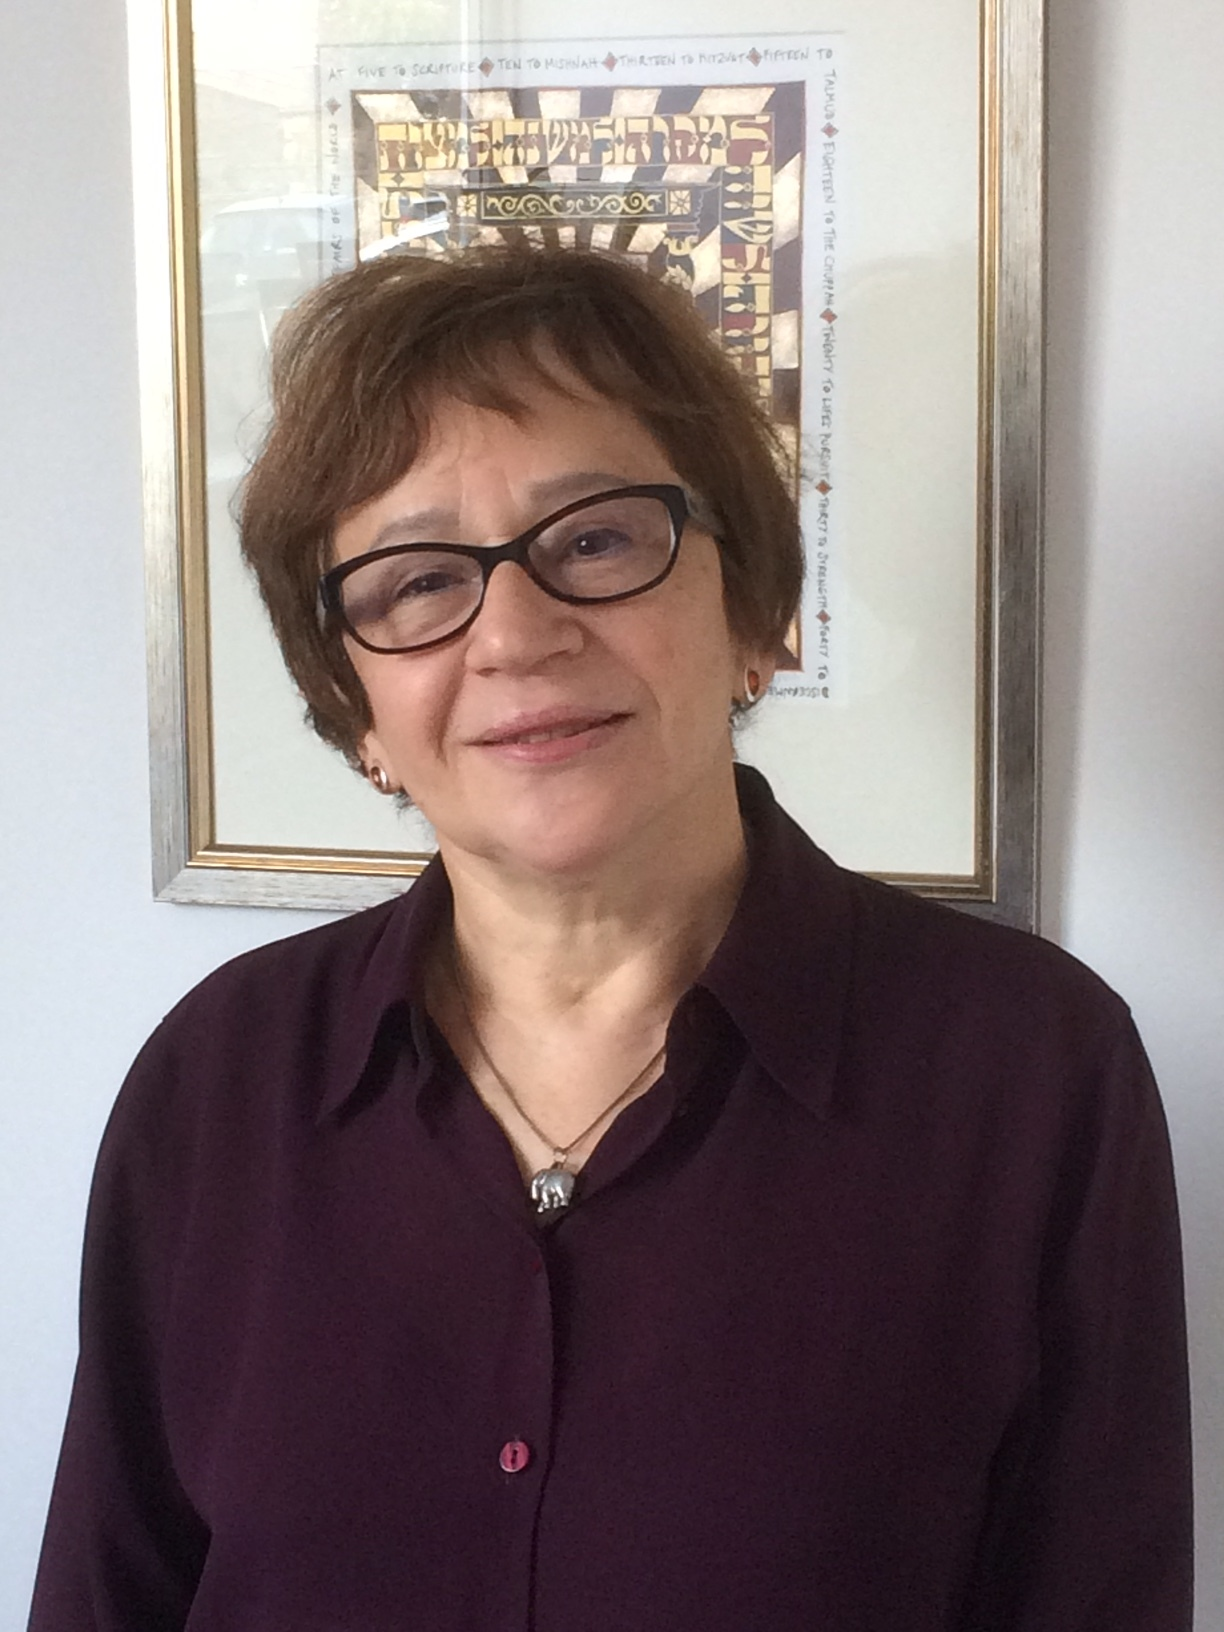 Viktoria (aka Wika)  Dorosz   This is my second 'stint' on Council. I am currently responsible for our twinning with Keshet, the Jewish community in Mogilev (Belarus), the Rosh Chodesh Group and the Library. I also work with Beit Tefillah (Rites and Practices).